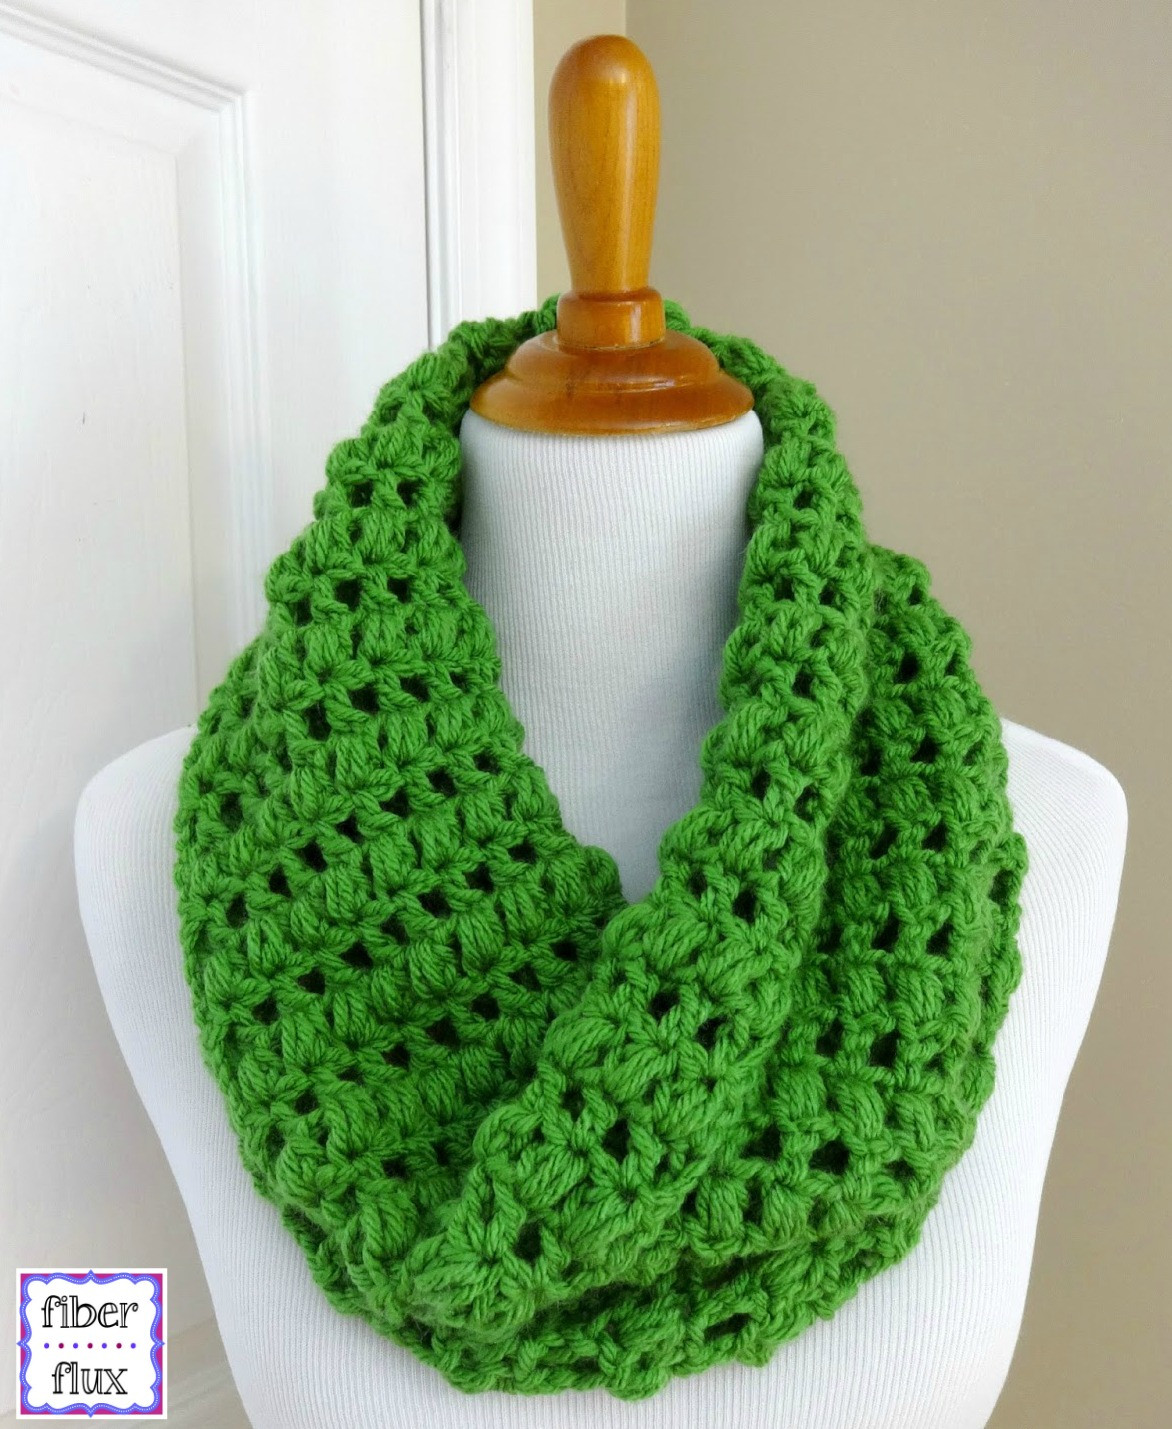 Crochet Projects Beautiful Fiber Flux Lucky You 30 Fabulous and Festive Crochet Of Unique 44 Pictures Crochet Projects